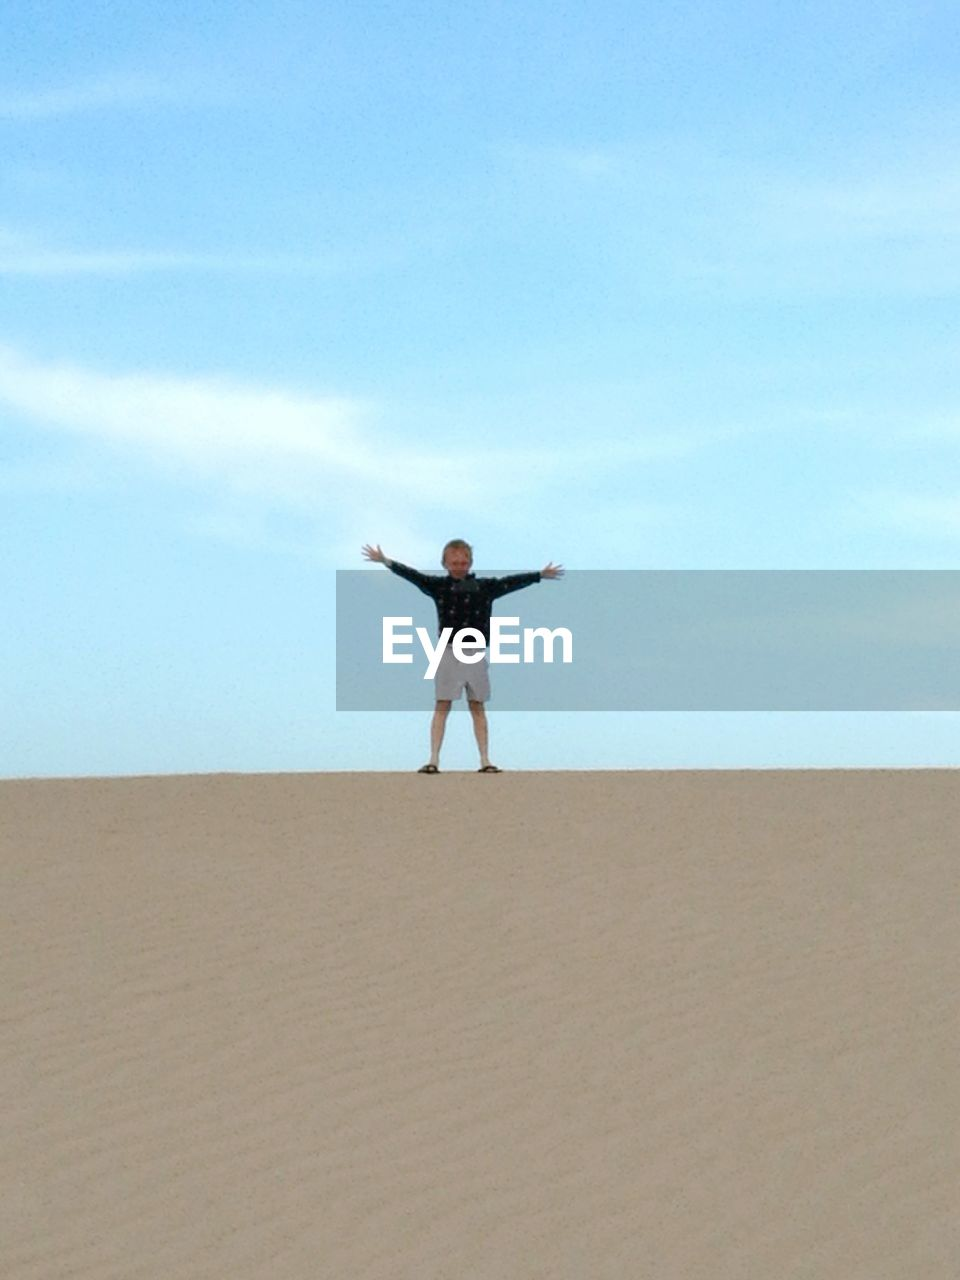 arms raised, sand, sky, one person, arms outstretched, standing, human arm, day, nature, blue, outdoors, beach, leisure activity, real people, human body part, full length, scenics, beauty in nature, energetic, young adult, people